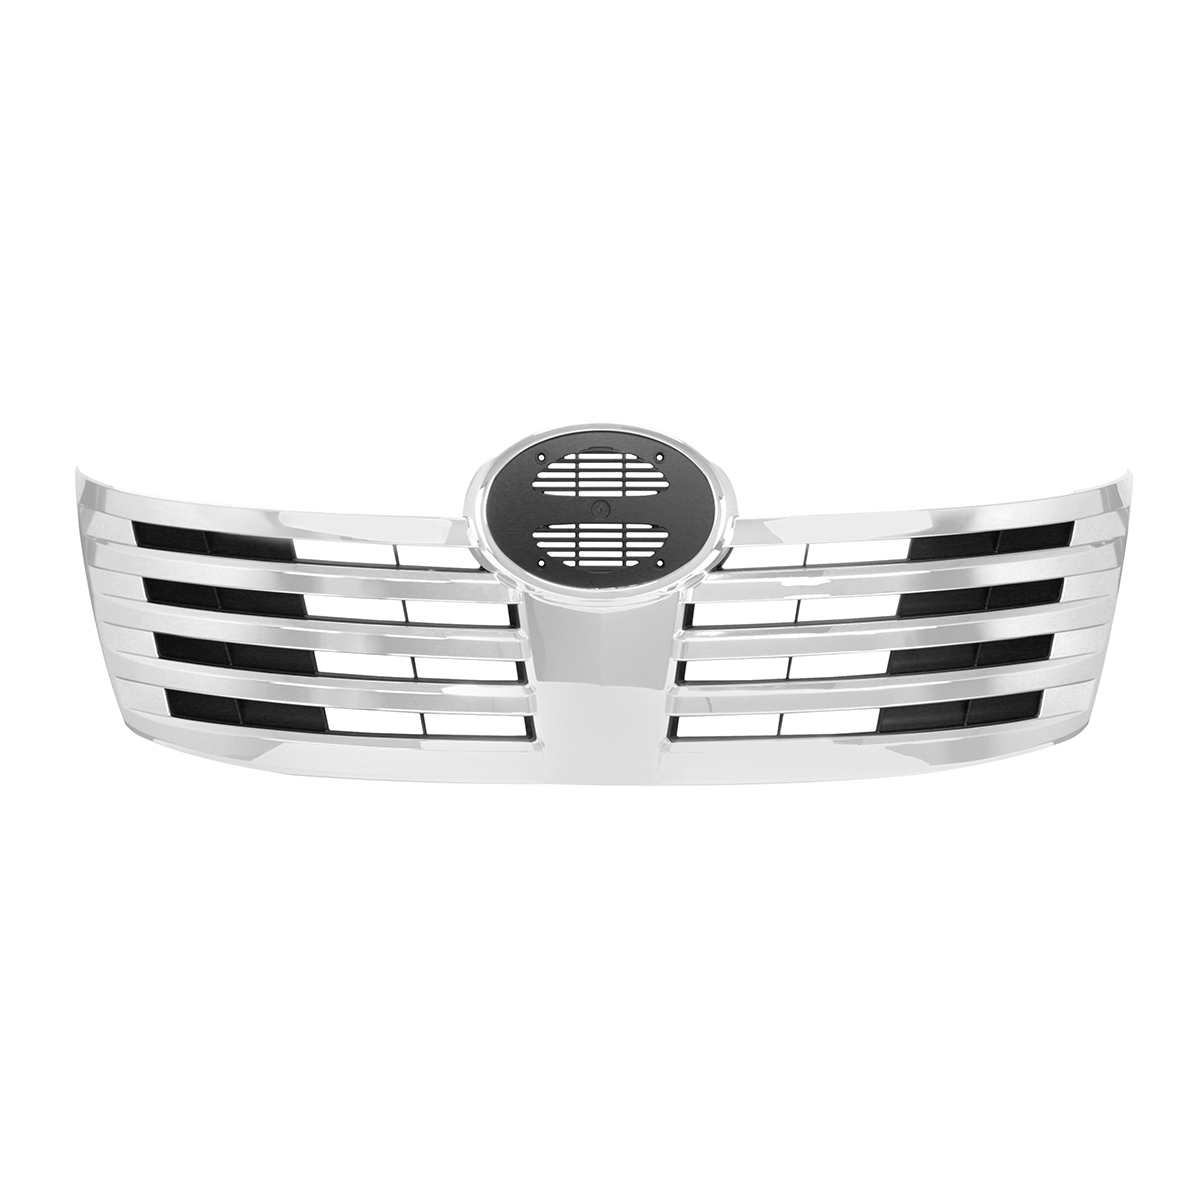 89330 Chrome Plastic Grille for Hino